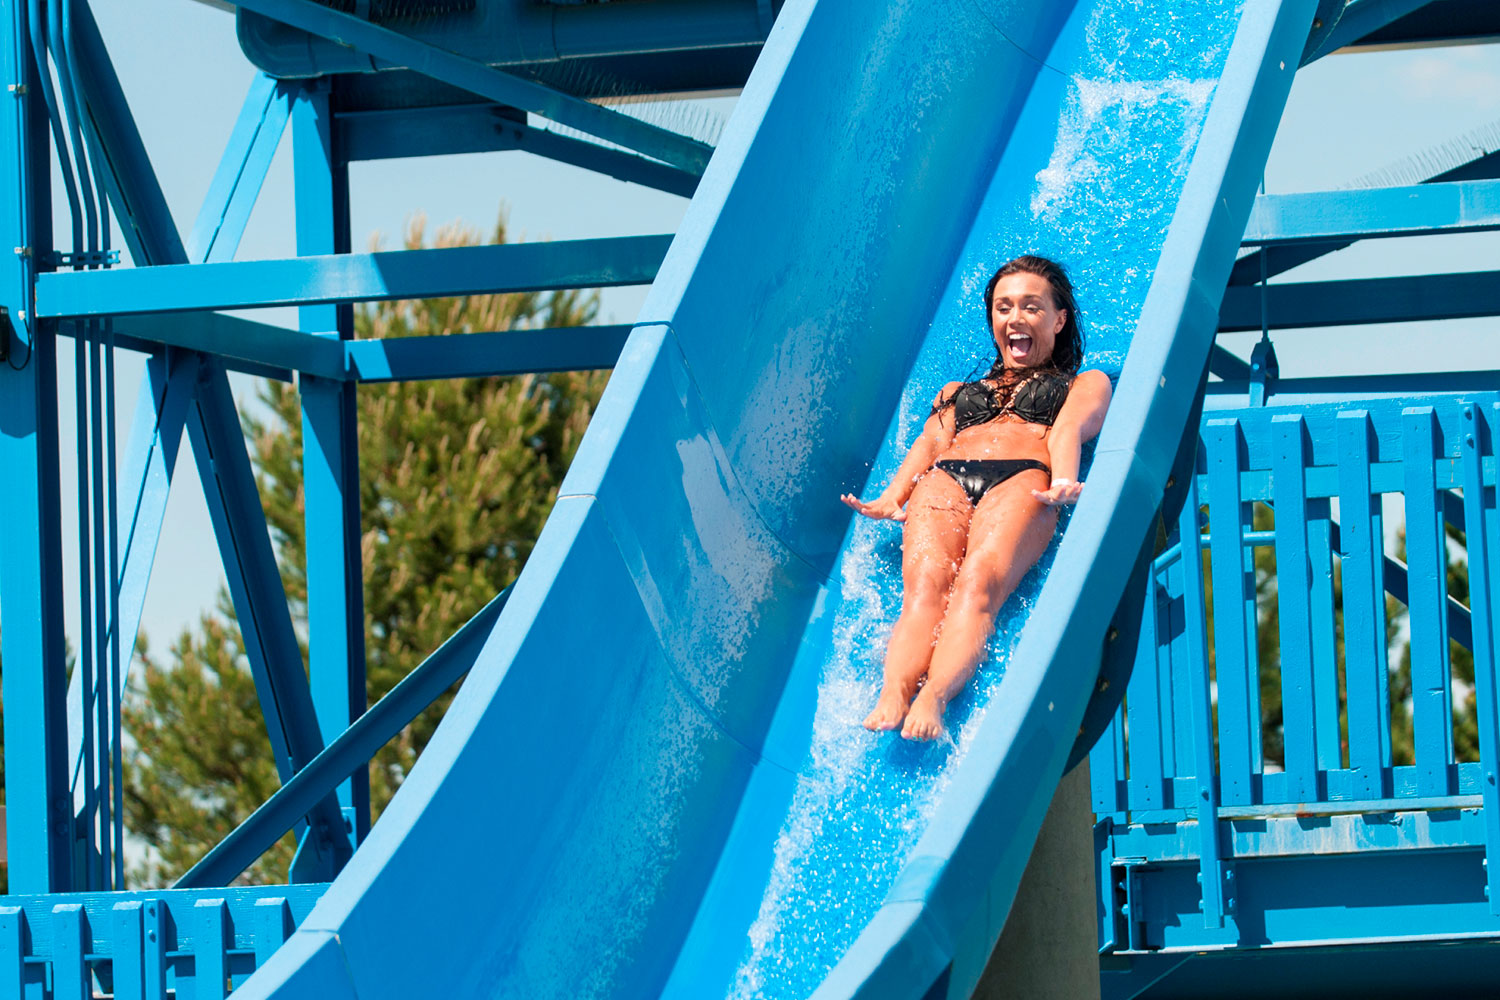 Girl Riding Drop Slide